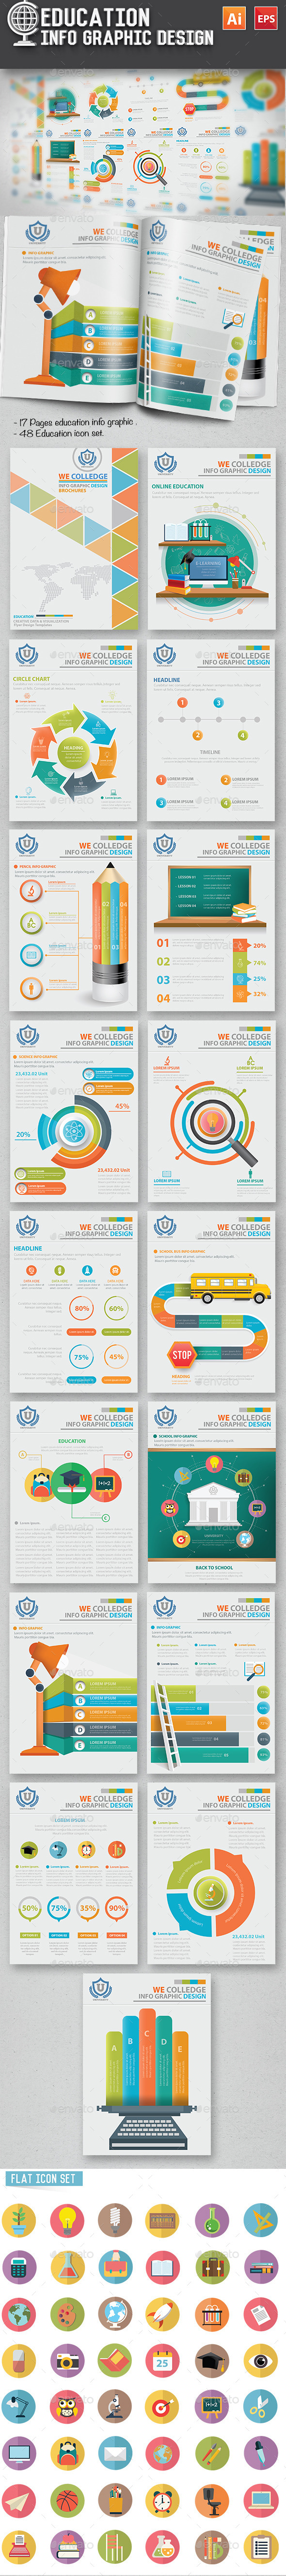 GraphicRiver Education Infographic 17 Pages Design 11766479